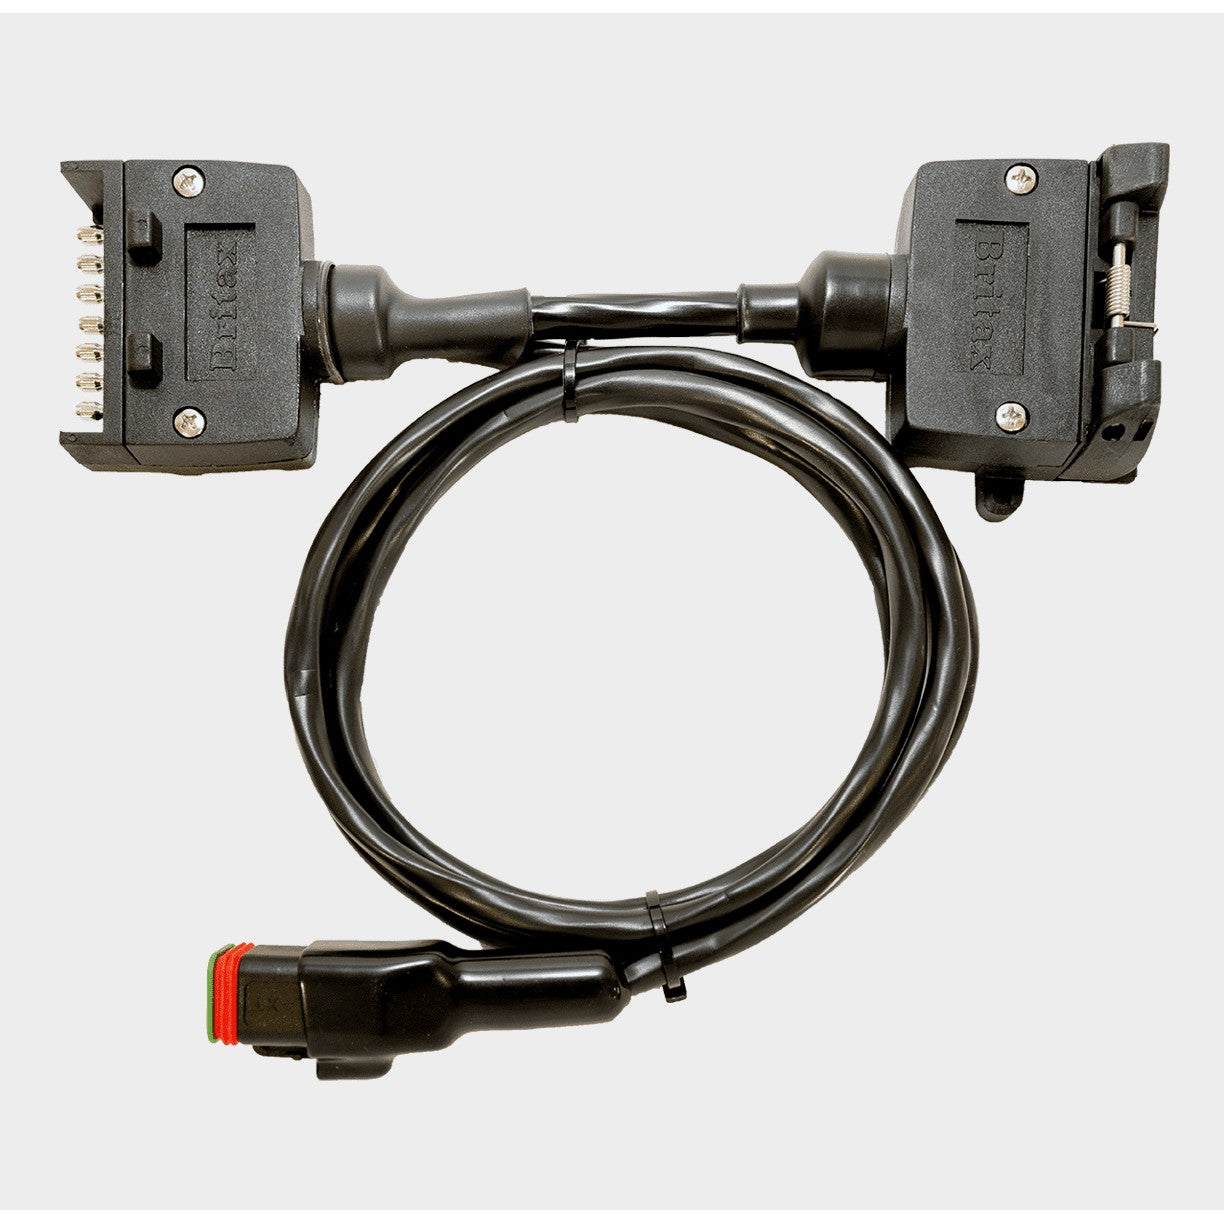 Lead only for Elecbrakes Electric Brake Controller - 7 pin flat to 7 pin flat lead Elecbrakes